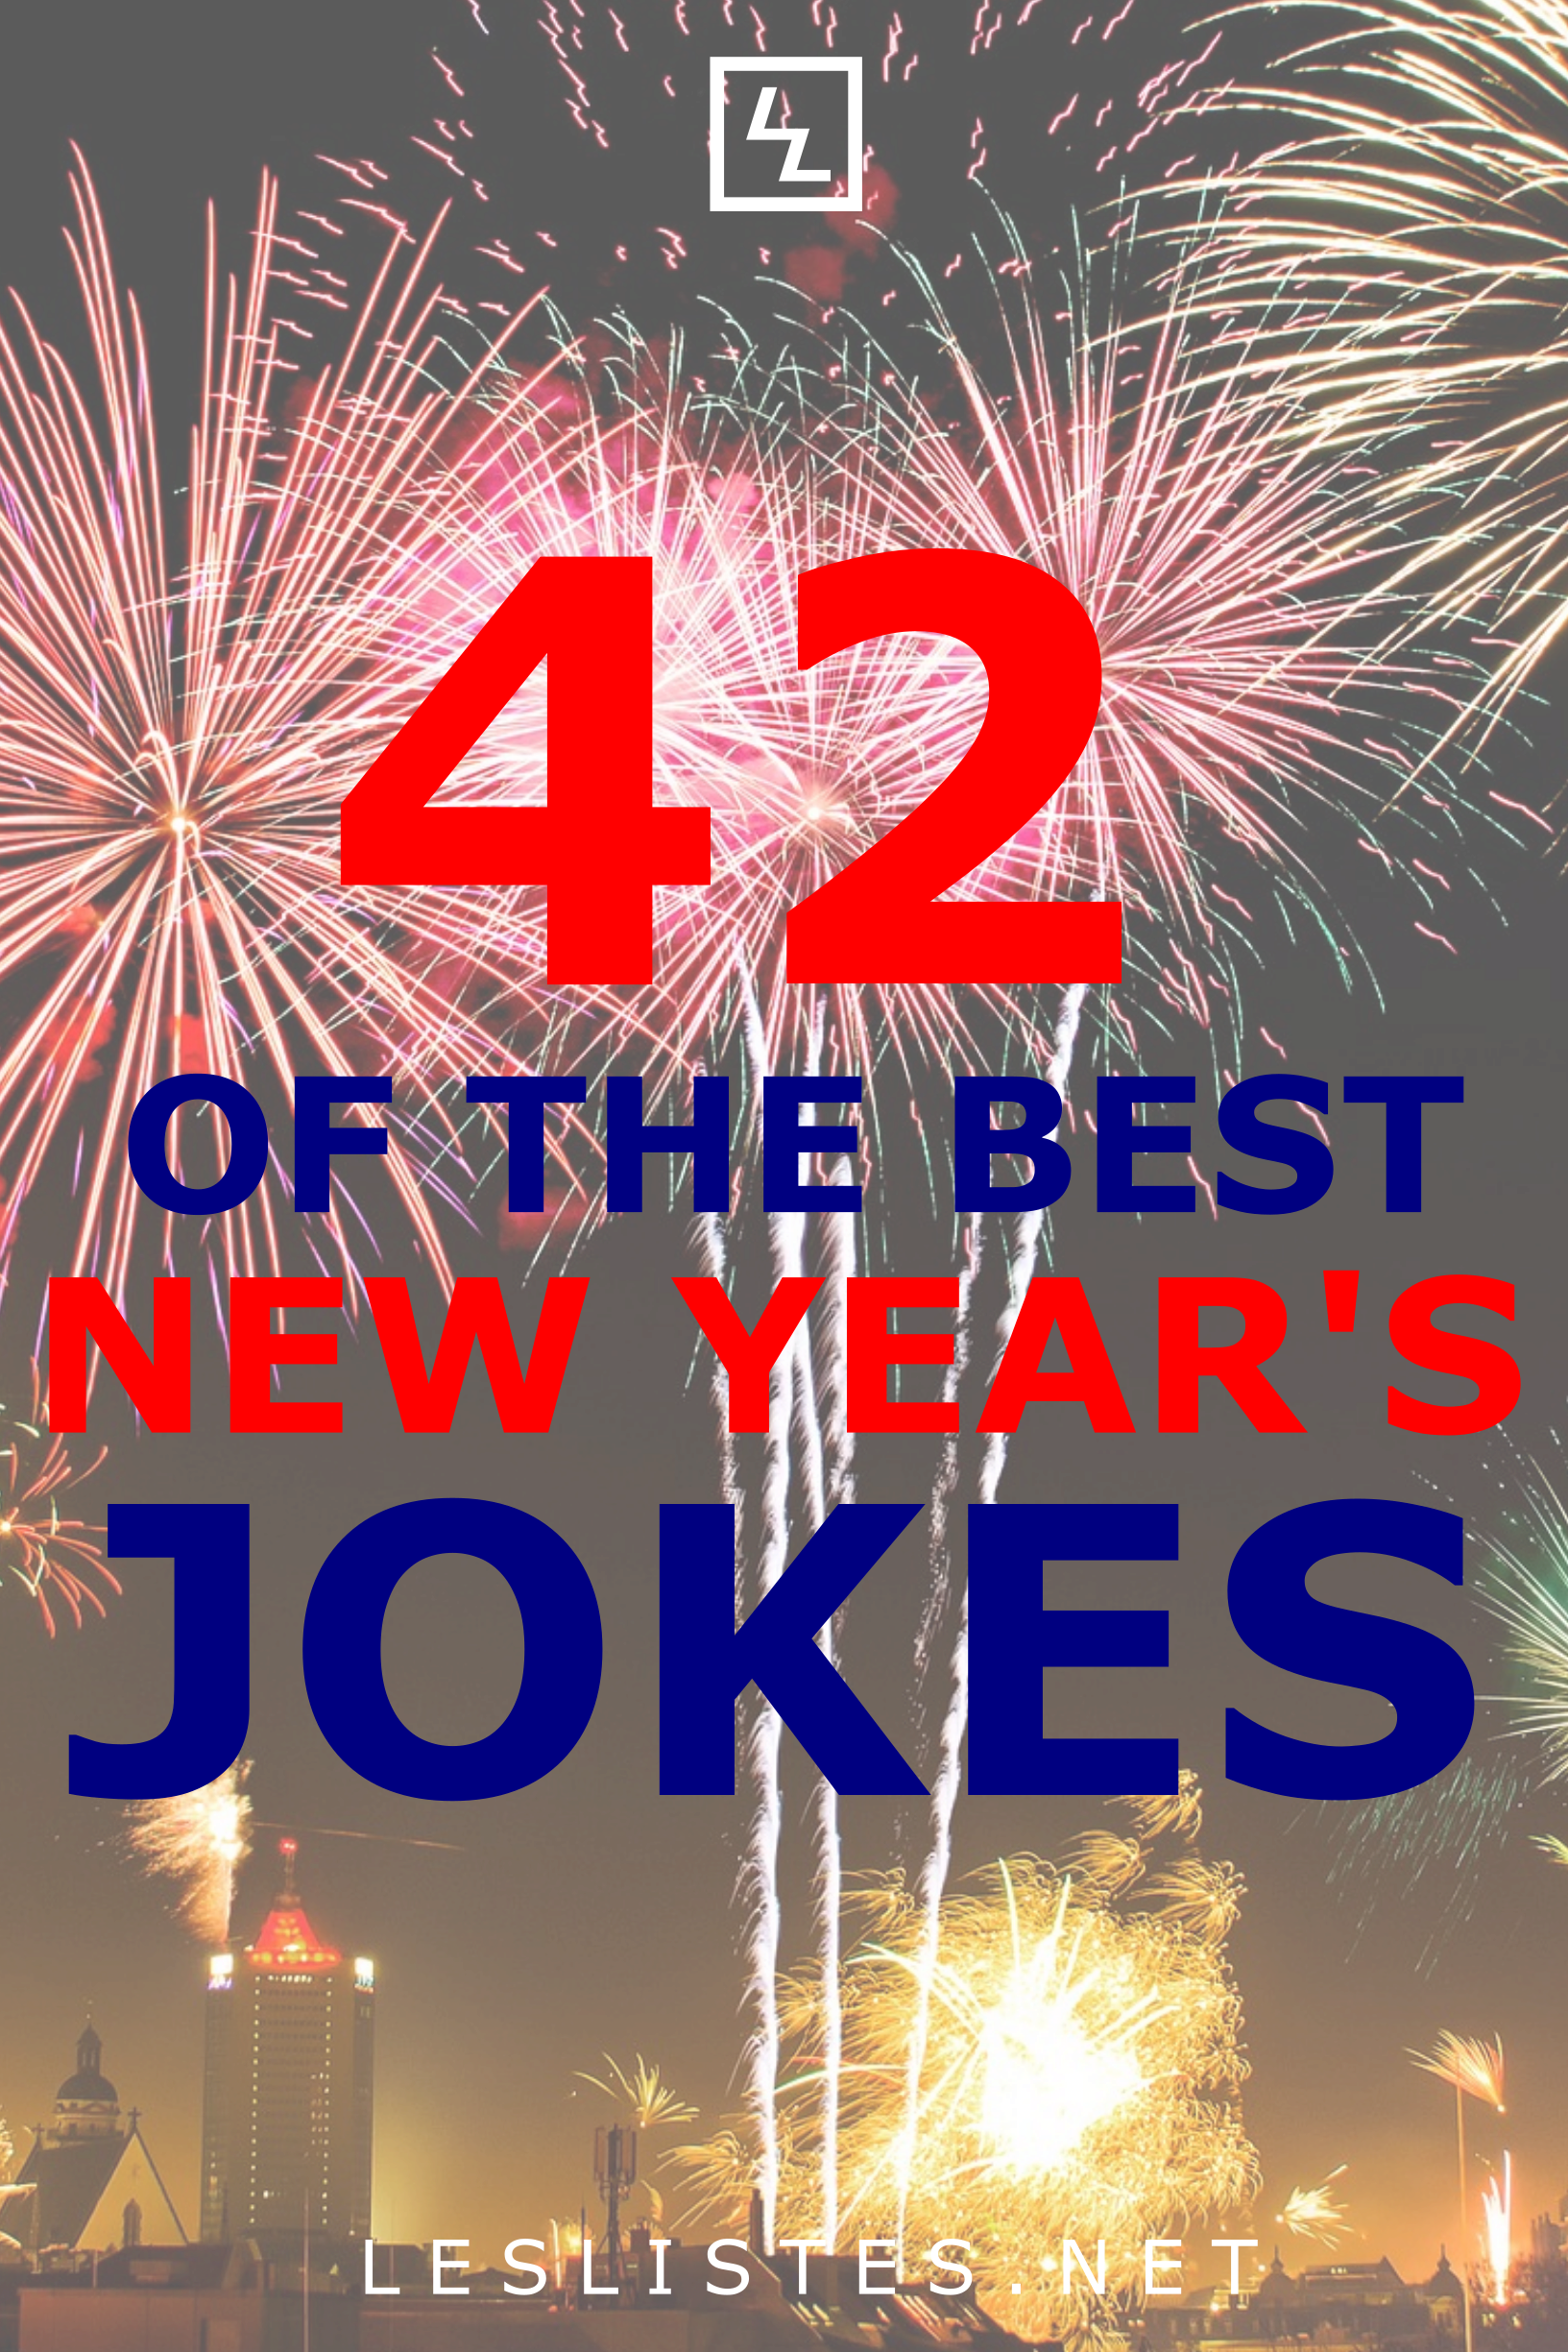 New Years Is A Great Day To Think About The Passing Of Time And Making Resolutions Check Out The Top 42 New Years Puns And New Year Jokes Funny New Year Jokes